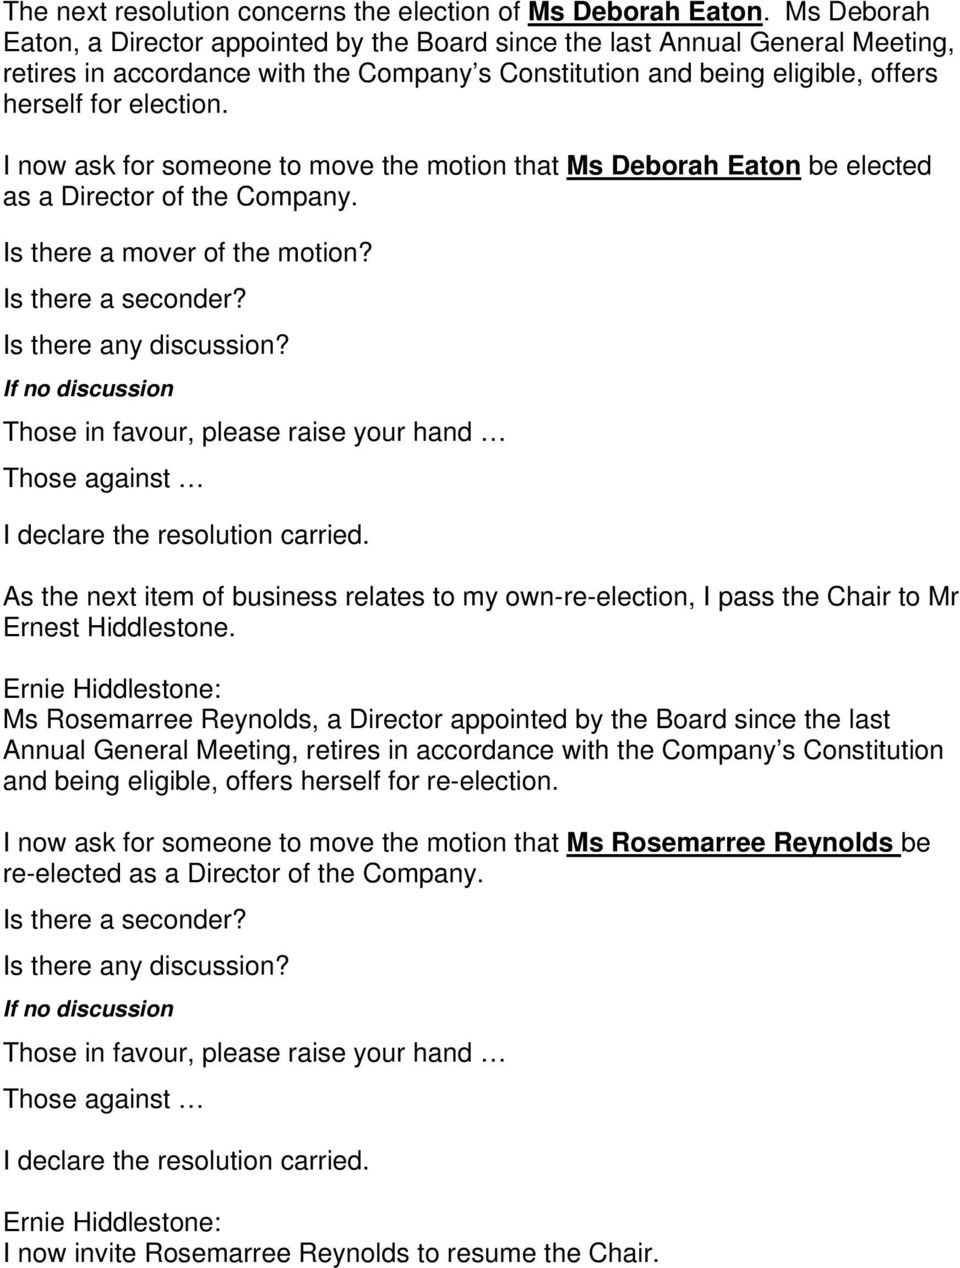 I now ask for someone to move the motion that Ms Deborah Eaton be elected as a Director of the Company.